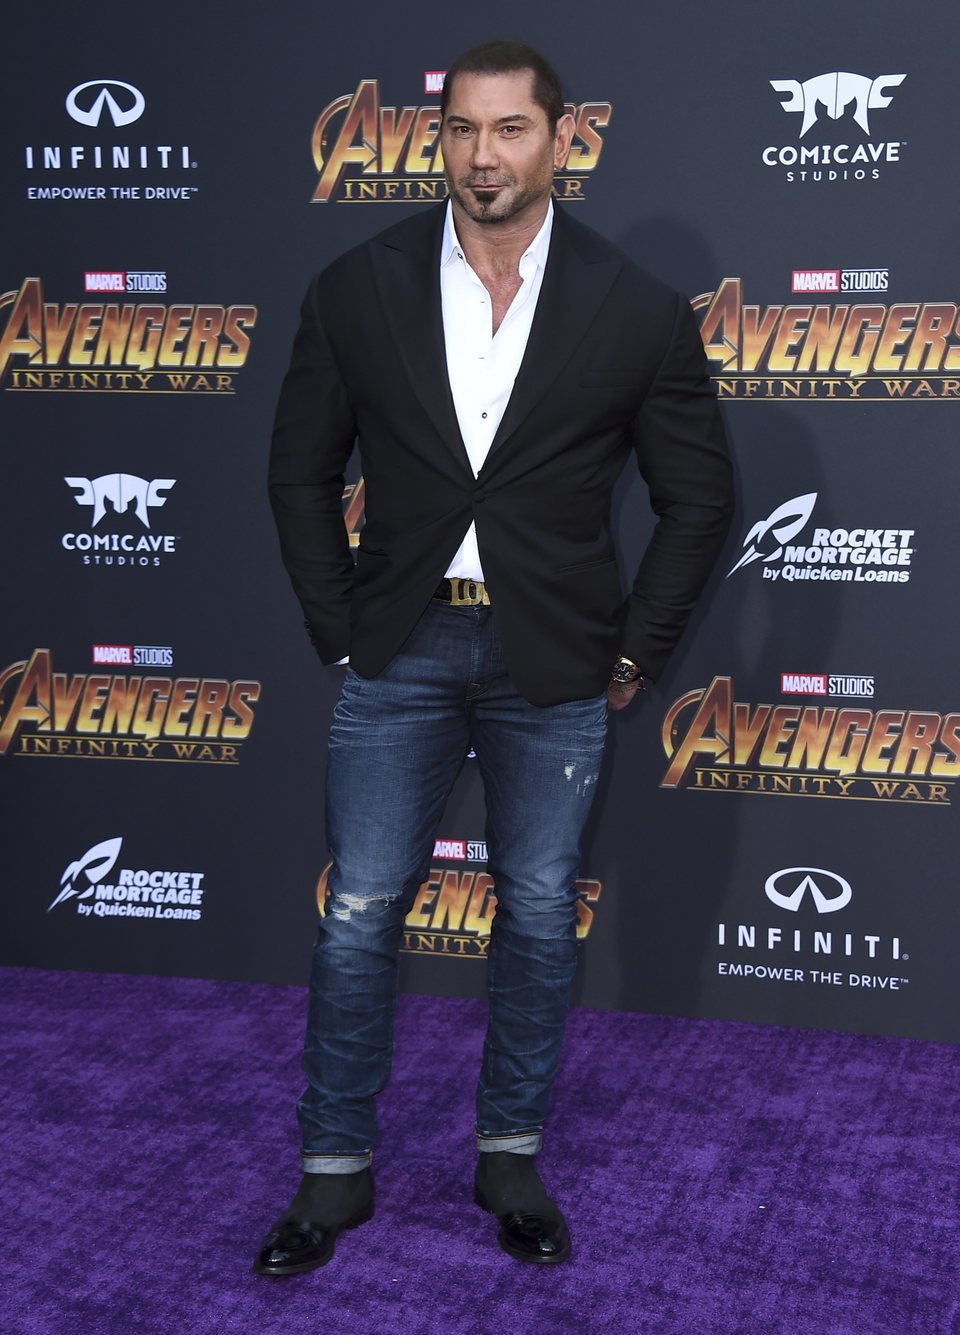 Dave Bautista poses on the purple carpet for the world premiere of 'Avengers: Infinity War'